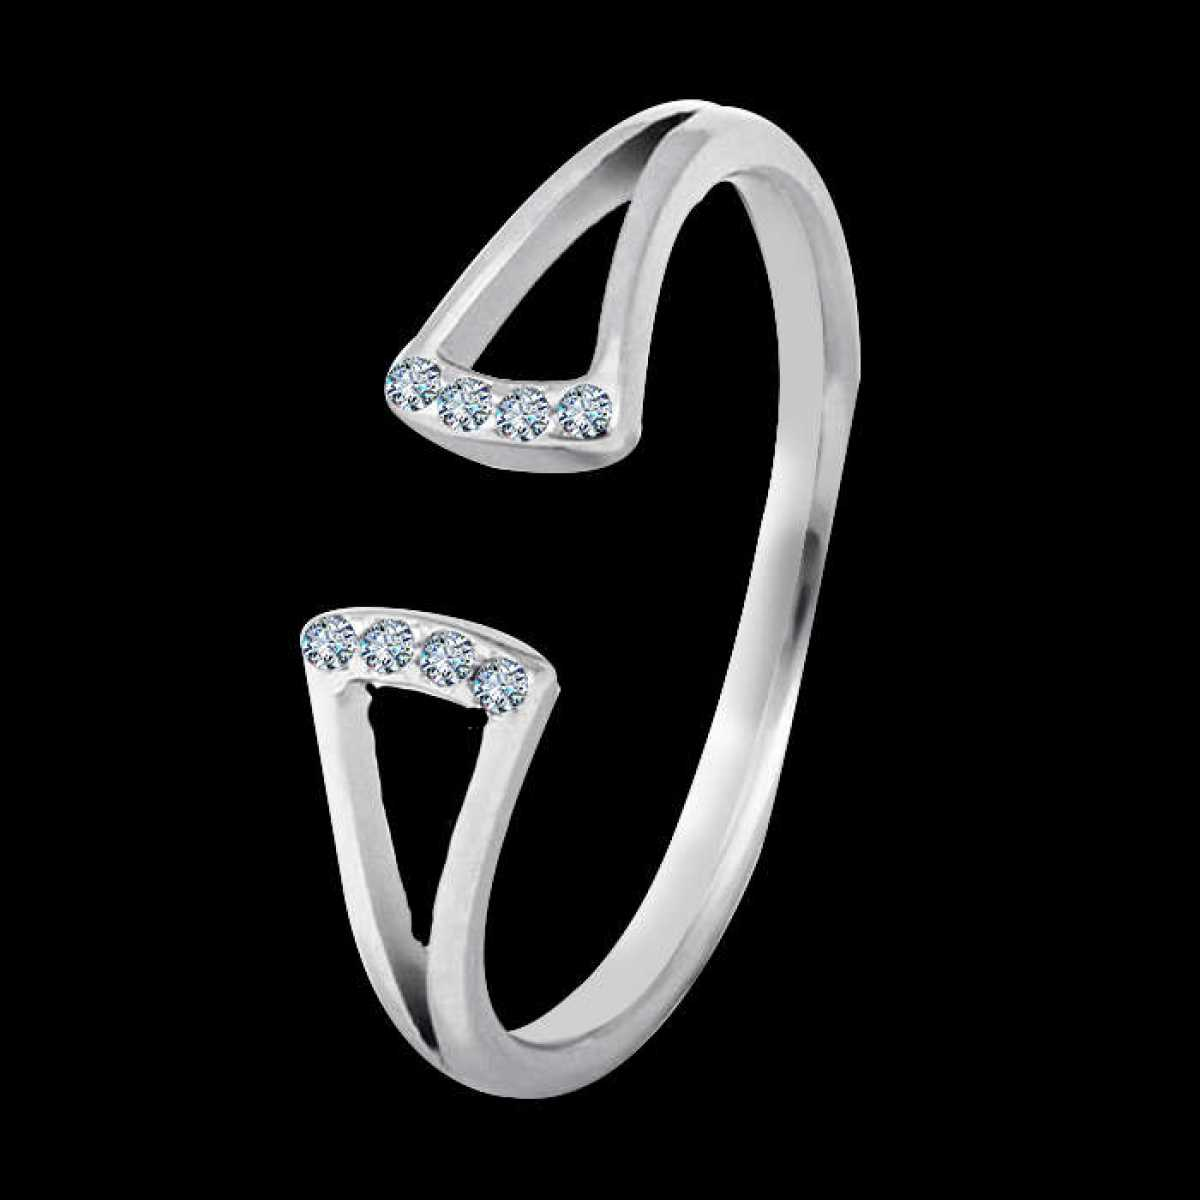 Freestyle sterling silver ring